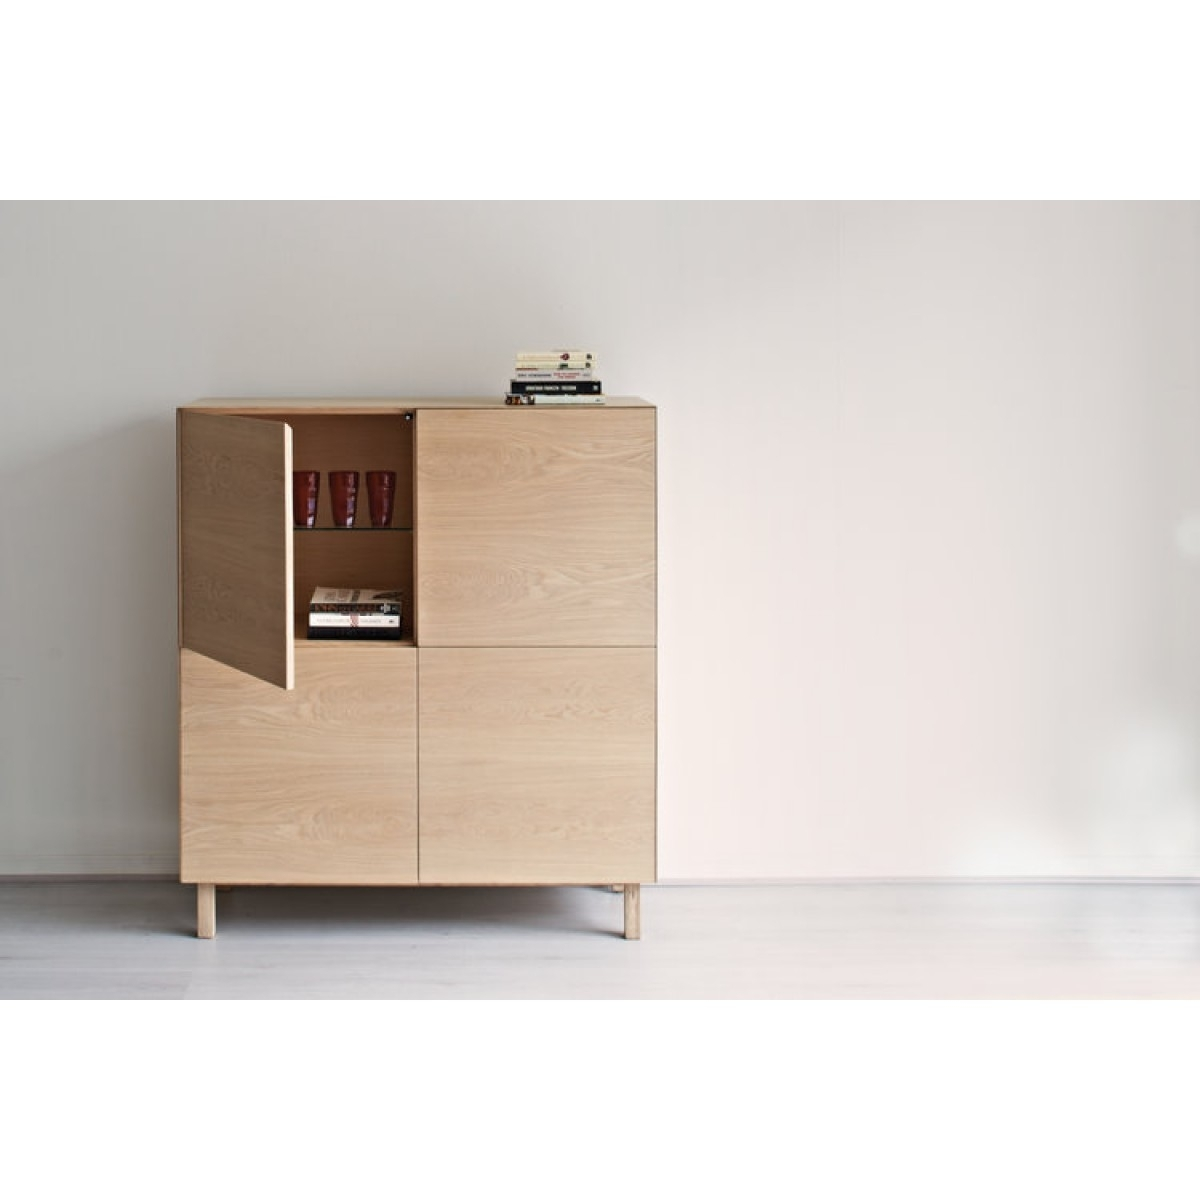 Cubo Square Cabinet 4 Doorsanother Brand - Sideboards - Kitchen intended for 4 Door Wood Squares Sideboards (Image 6 of 30)